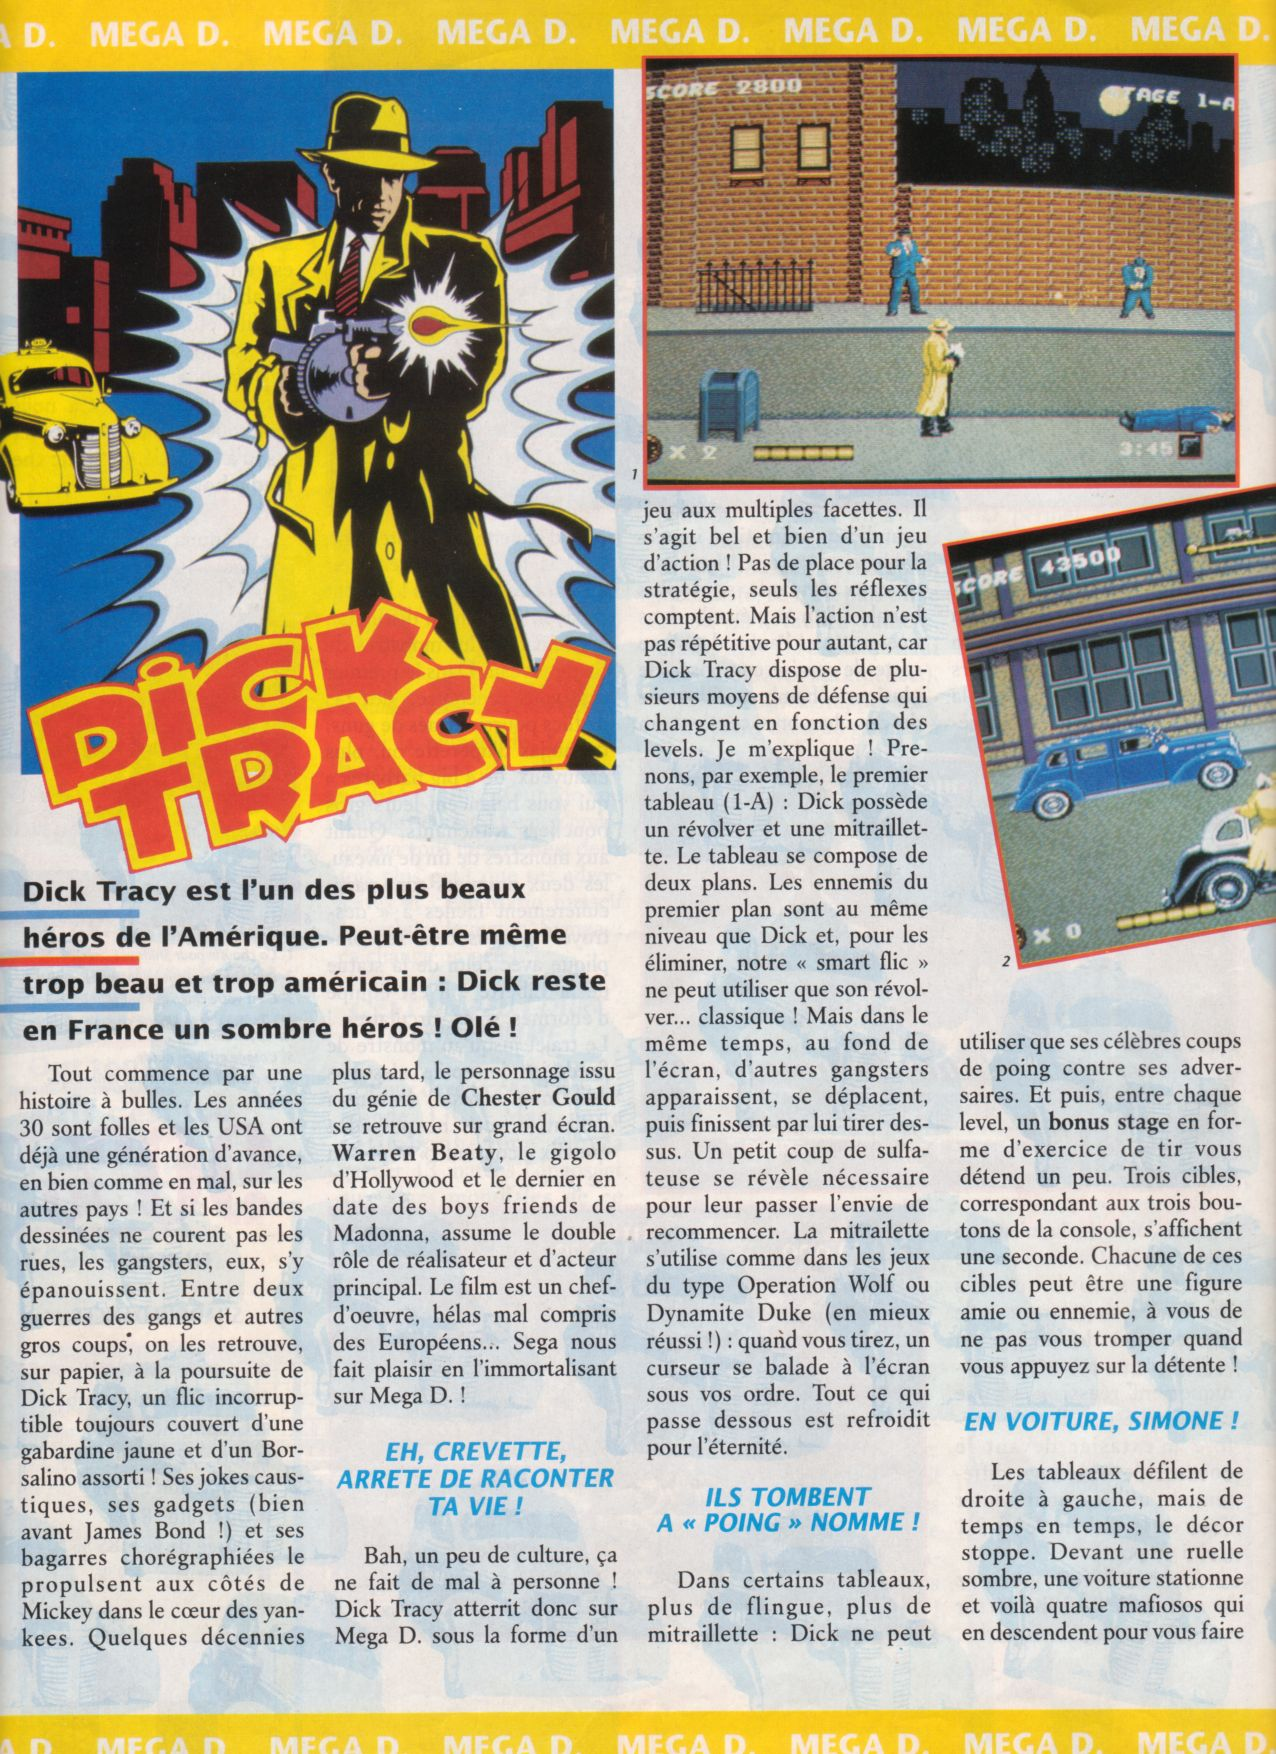 [Jeux]   DICK TRACY (Megadrive) 1990.  Player%20One%20010%20-%20Page%20028%20(1991-06)